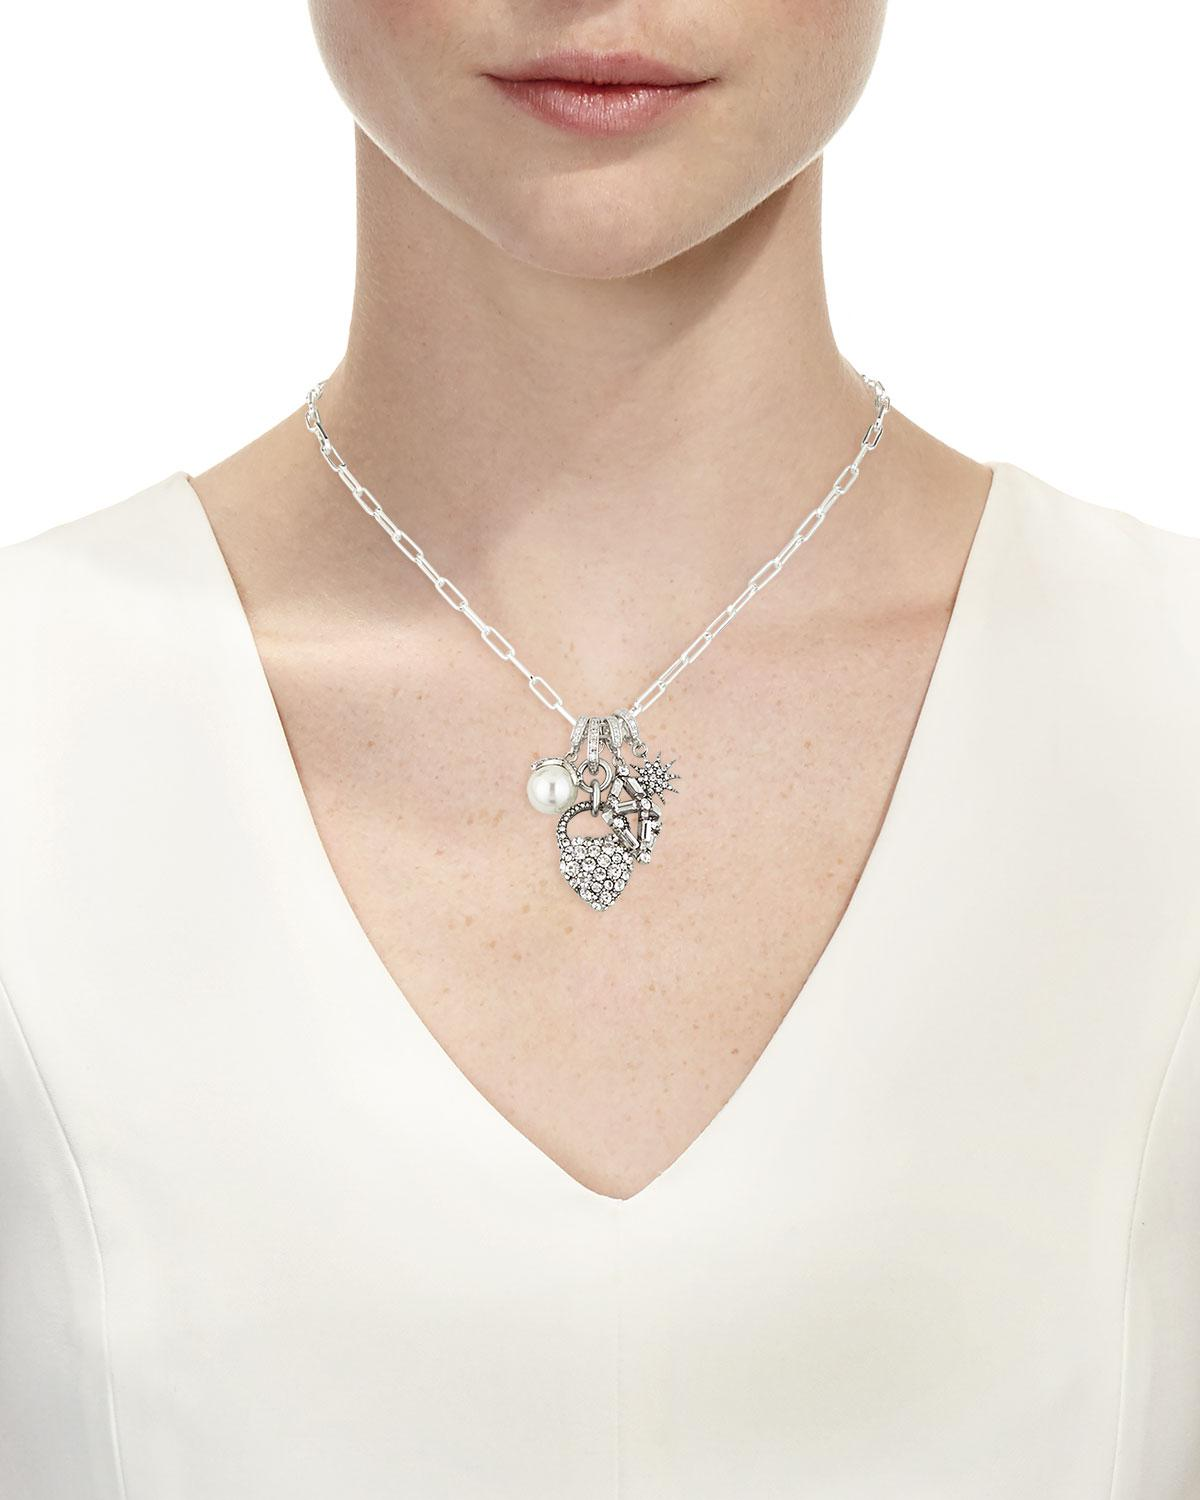 Lulu Frost Mixed Crystal Charm Necklace 7k4nN136t